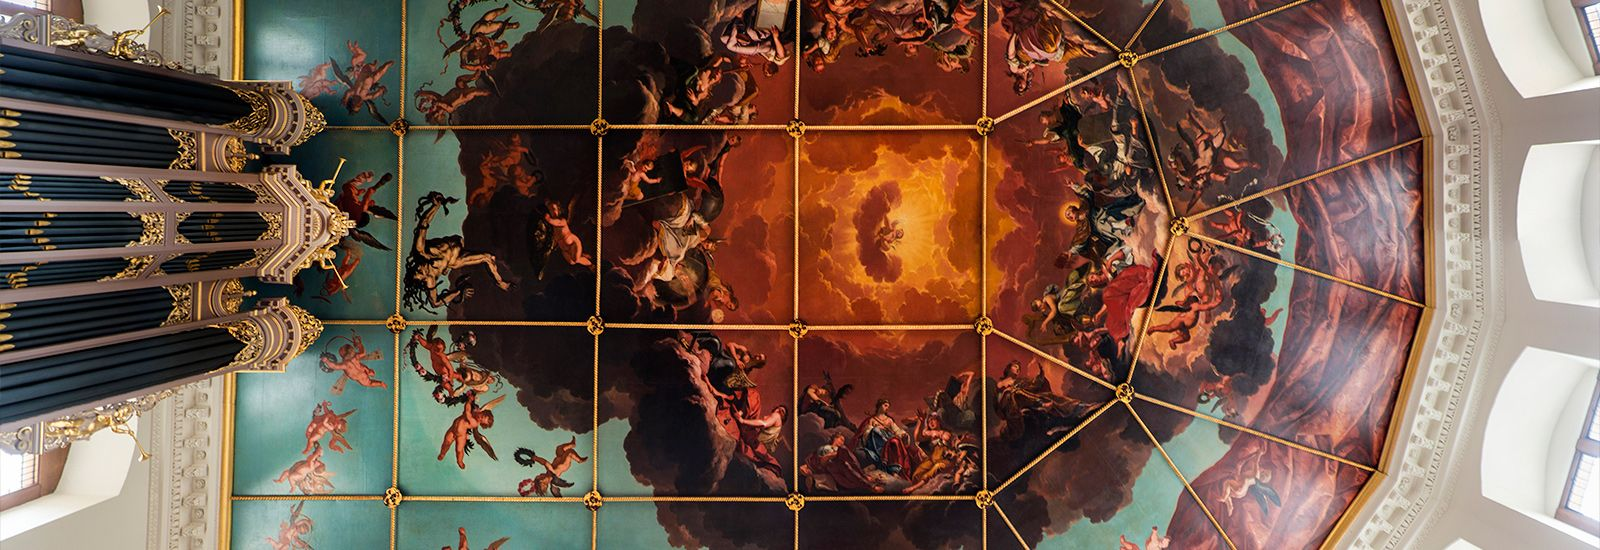 Ceiling of the Sheldonian Theatre